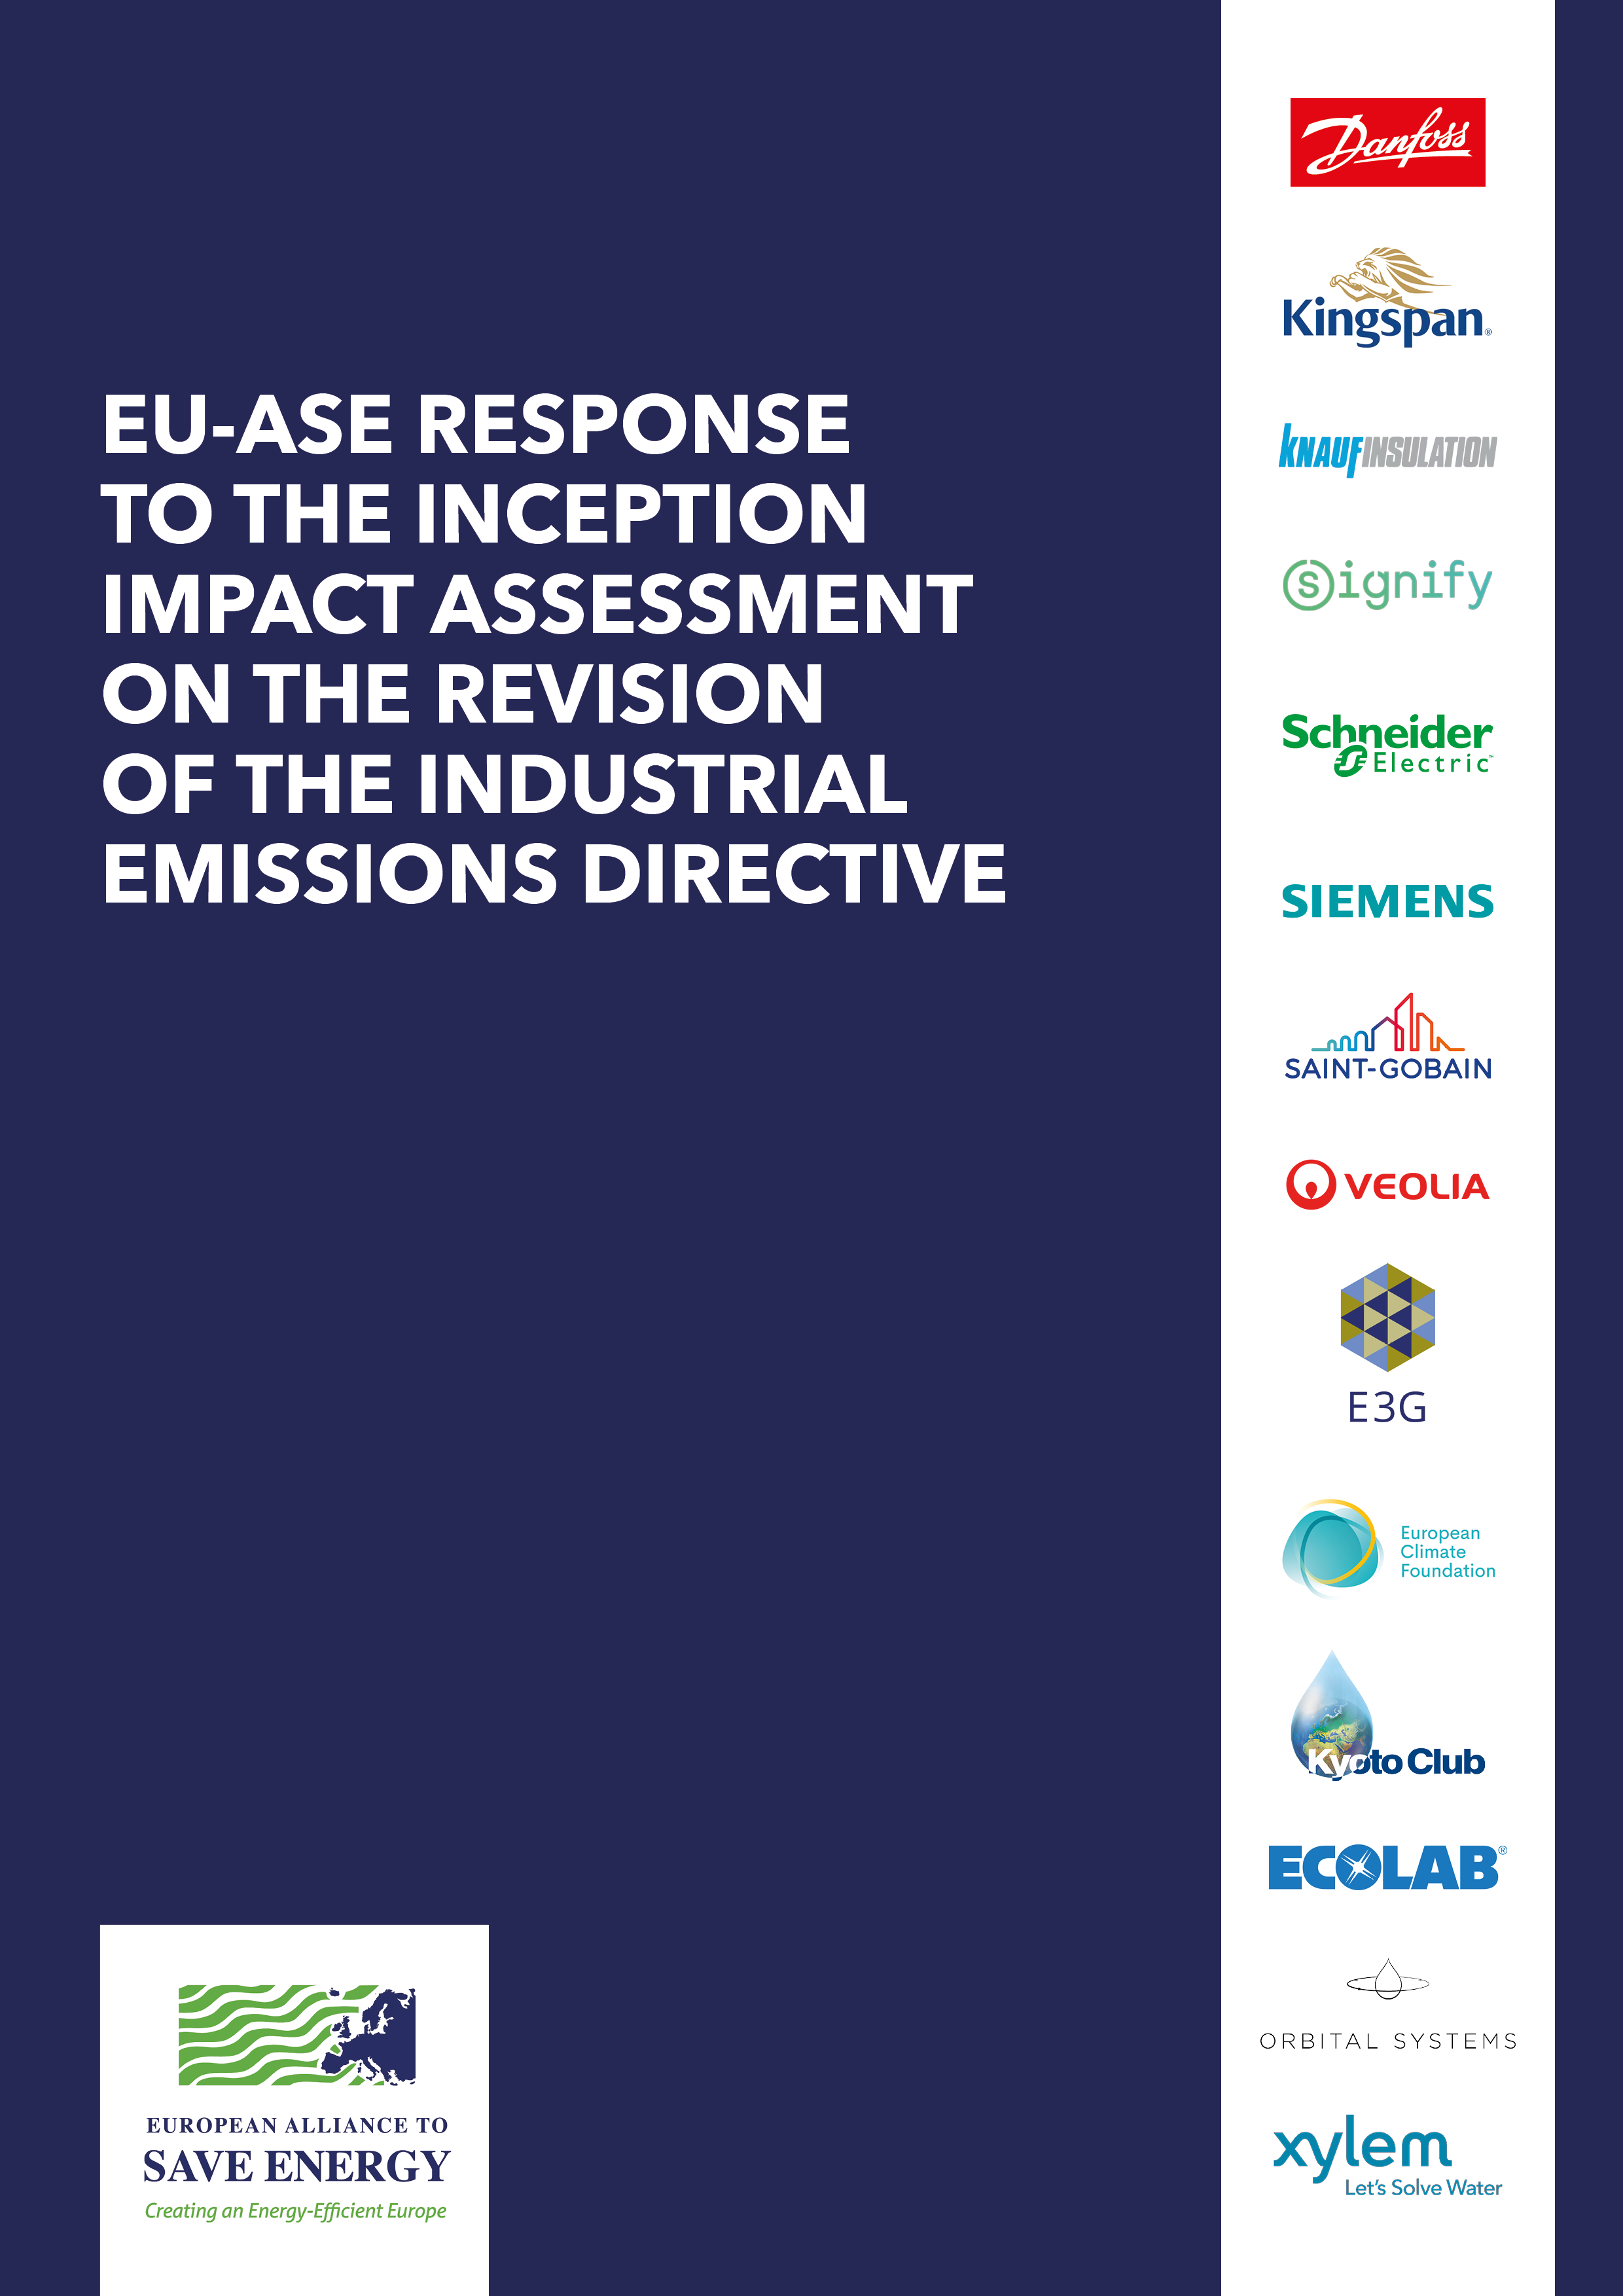 EU-ASE response to the Inception Impact Assessment on the Industrial Emissions Directive